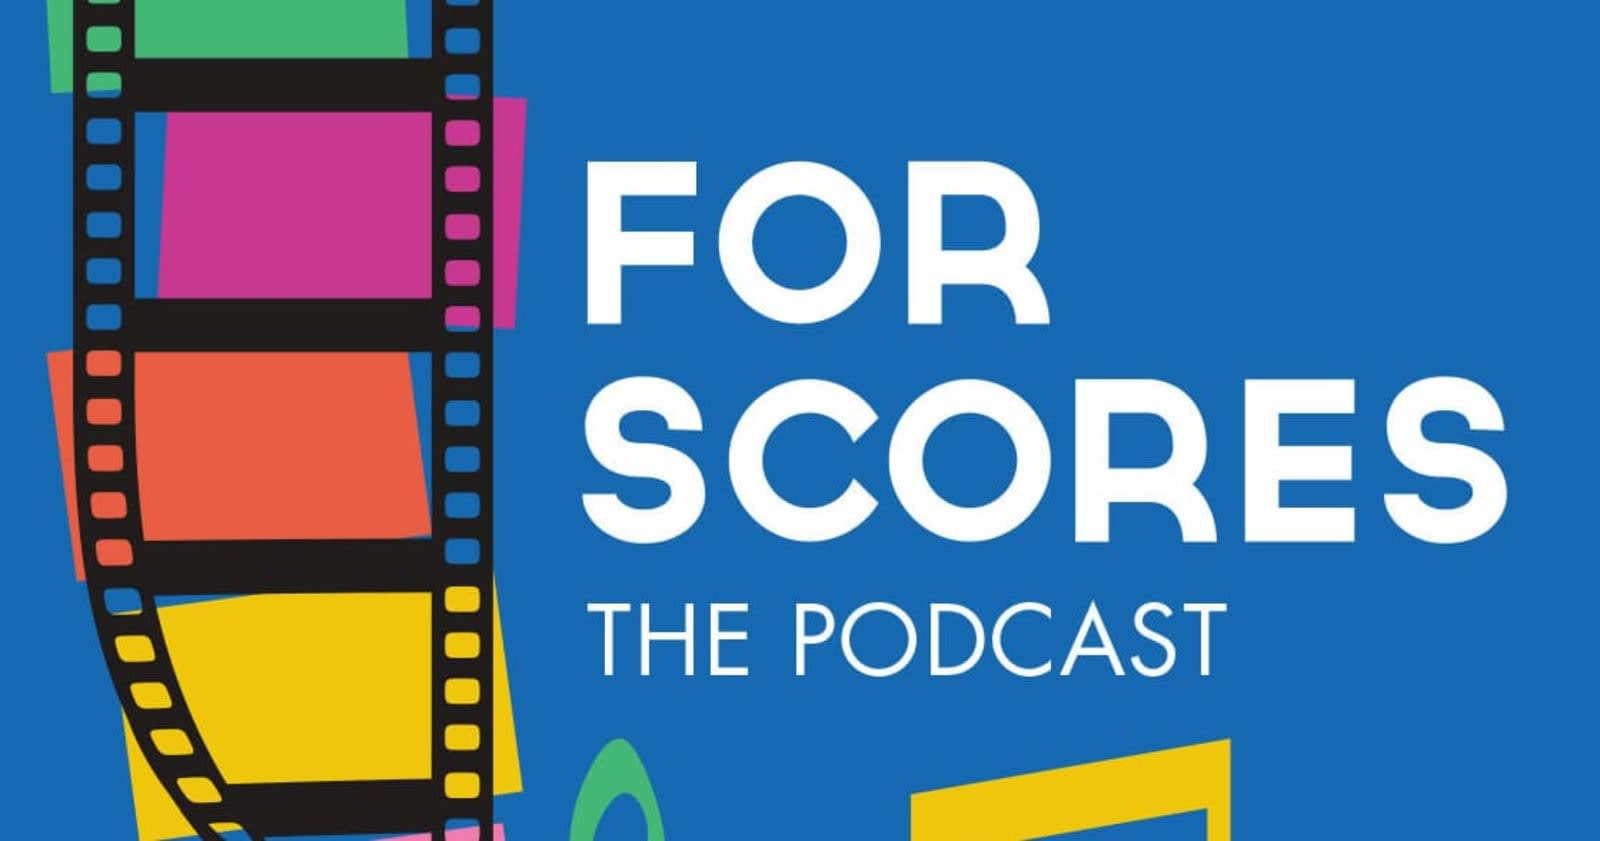 Disney's composer-focused podcast debuts this week